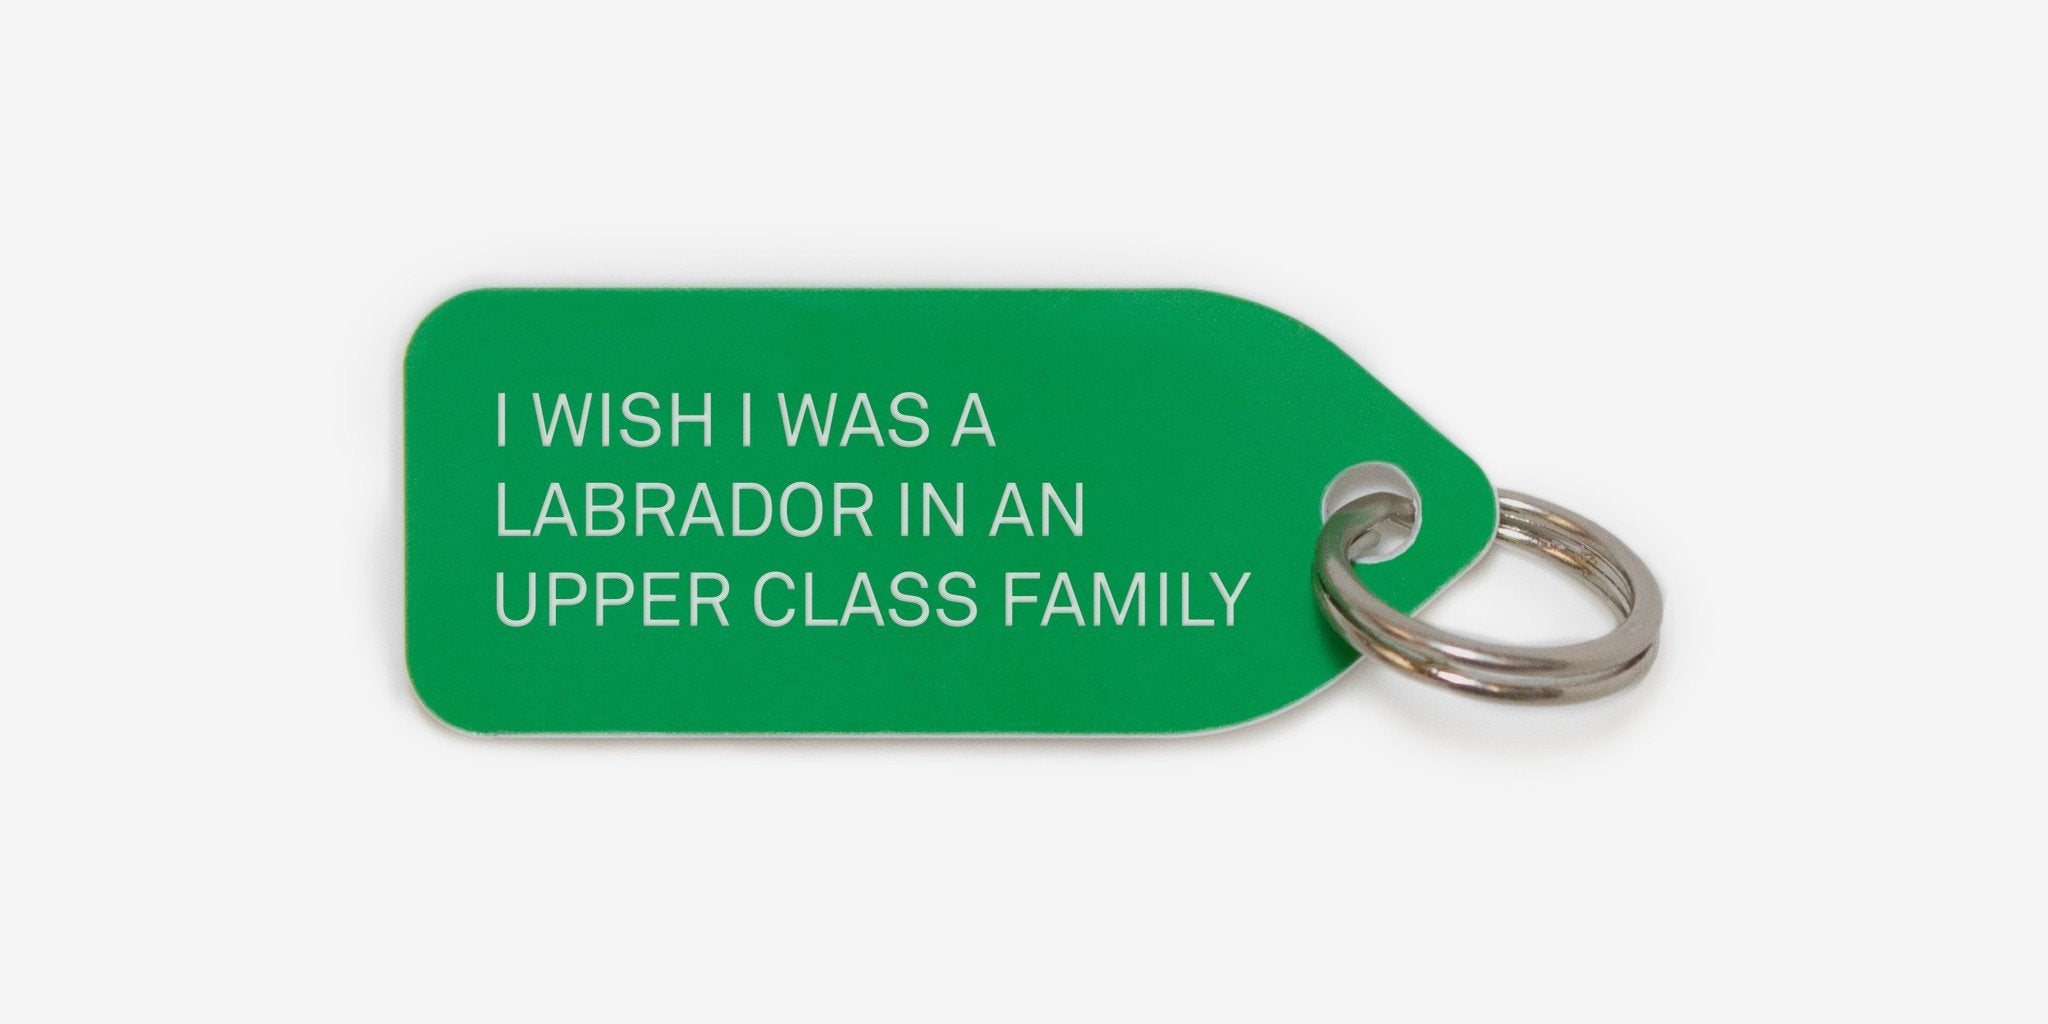 Dog tag - I wish I was a labrador in an upper class family